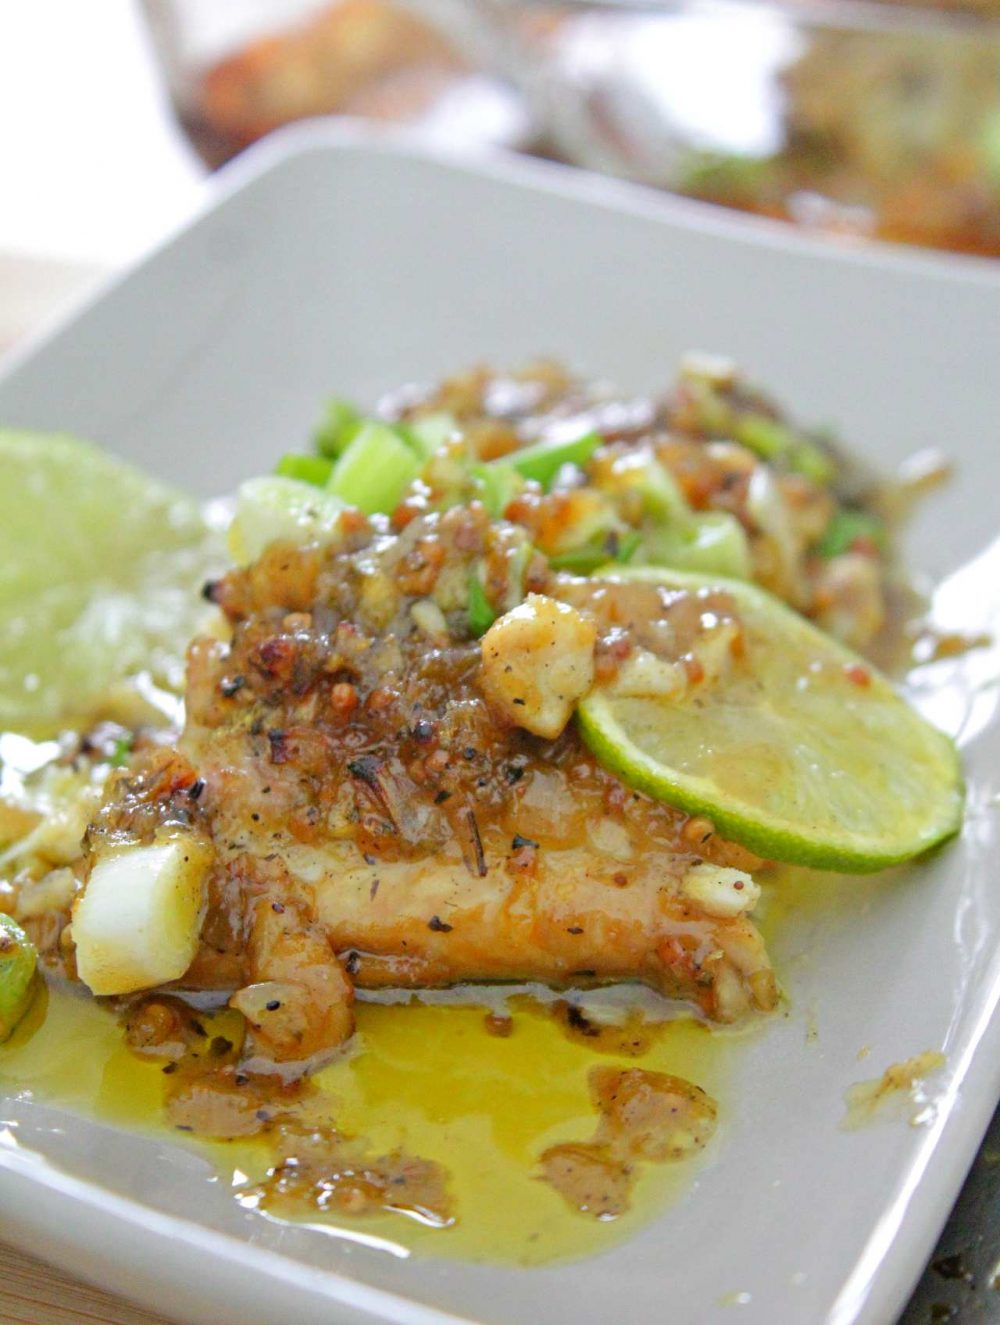 Honey mustard fish on a white serving plate with a slice of lime and garlic